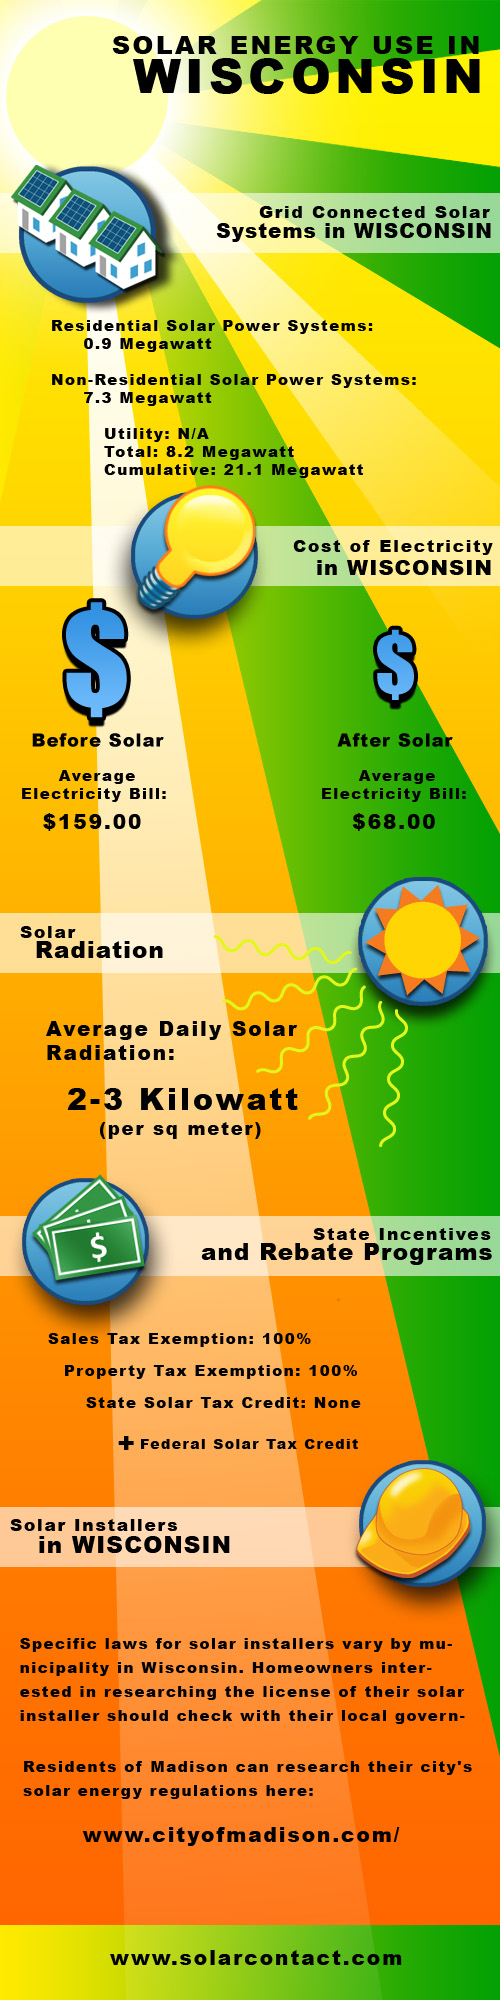 Fact Sheet Solar Energy Use in Wisconsin